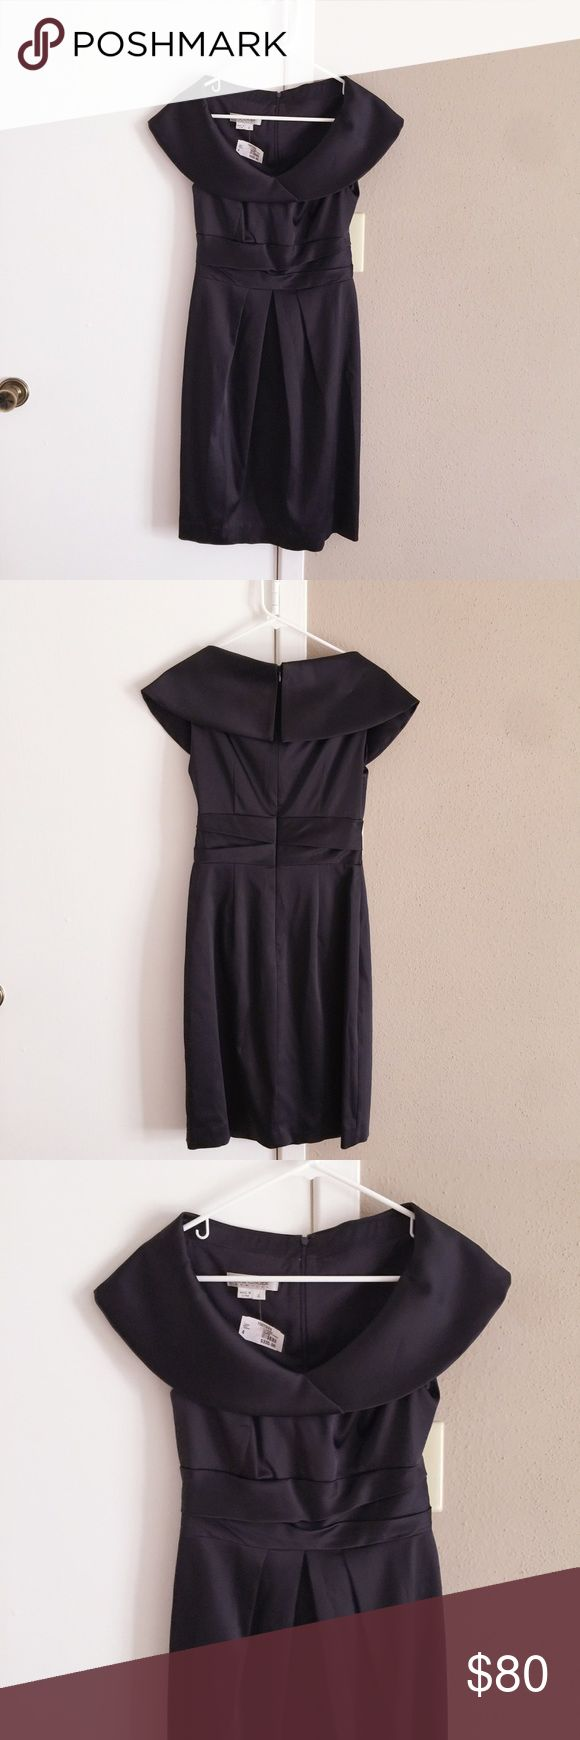 "NWT Kay Unger stain navy blue cocktail dress. NWT Kay Unger stain navy blue cocktail dress. Size: 4. Length: 38"". Waist: 26"" to 27.5"". Brand new with the tag. Kay Unger Dresses"